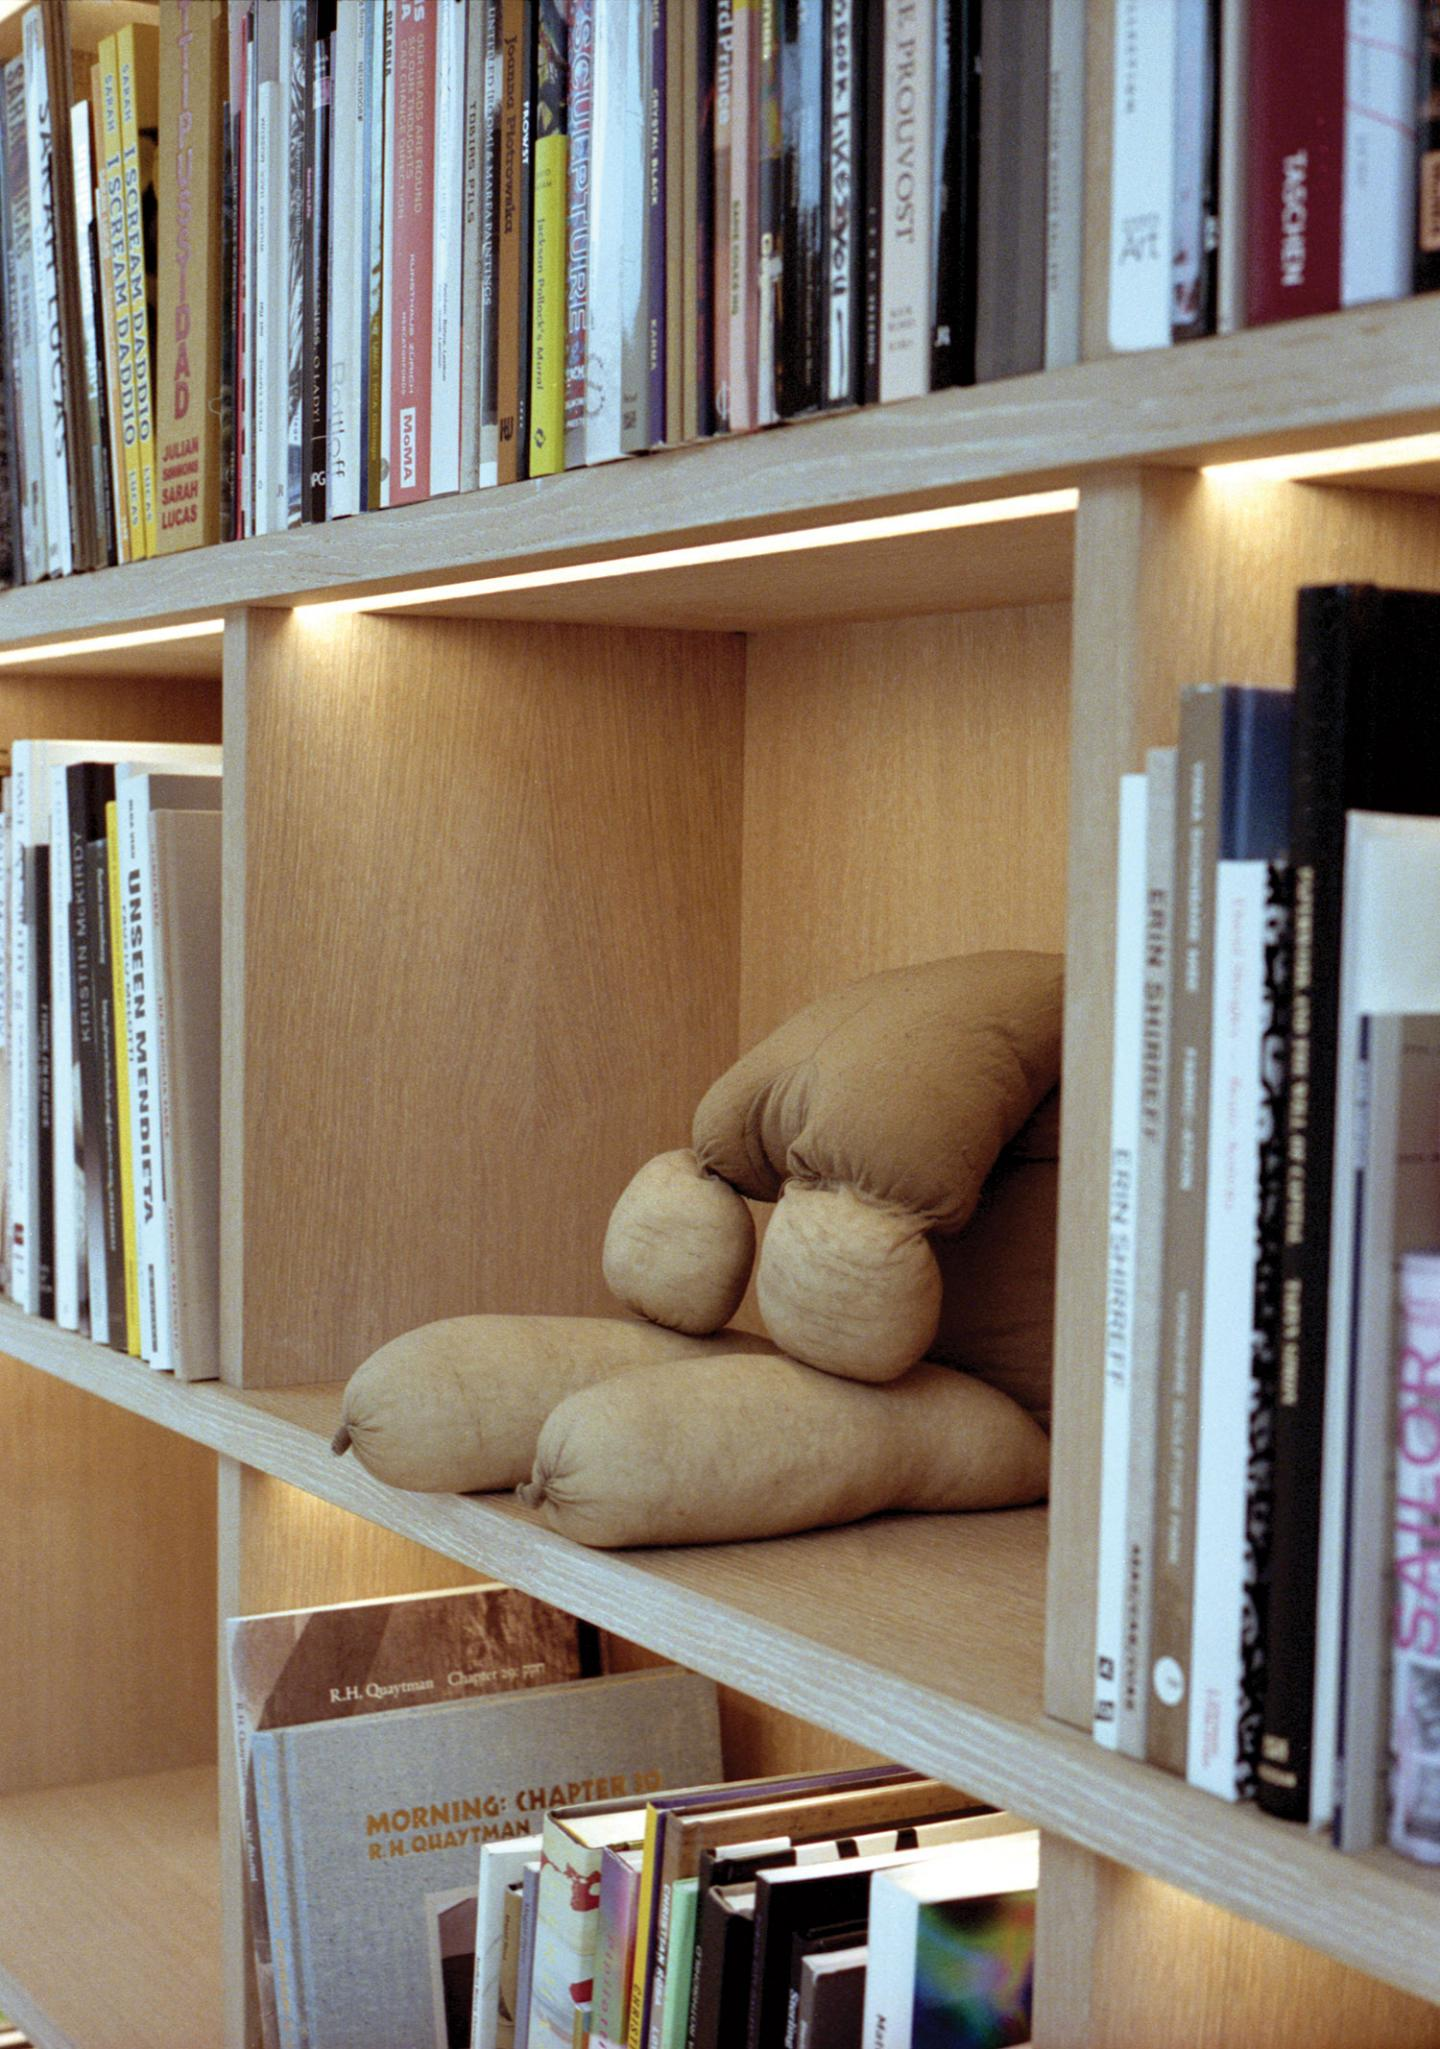 Sarah Lucas, Tit Teddy, 2012 in the library at The Perimeter. Photograph:Kuba Ryniewicz